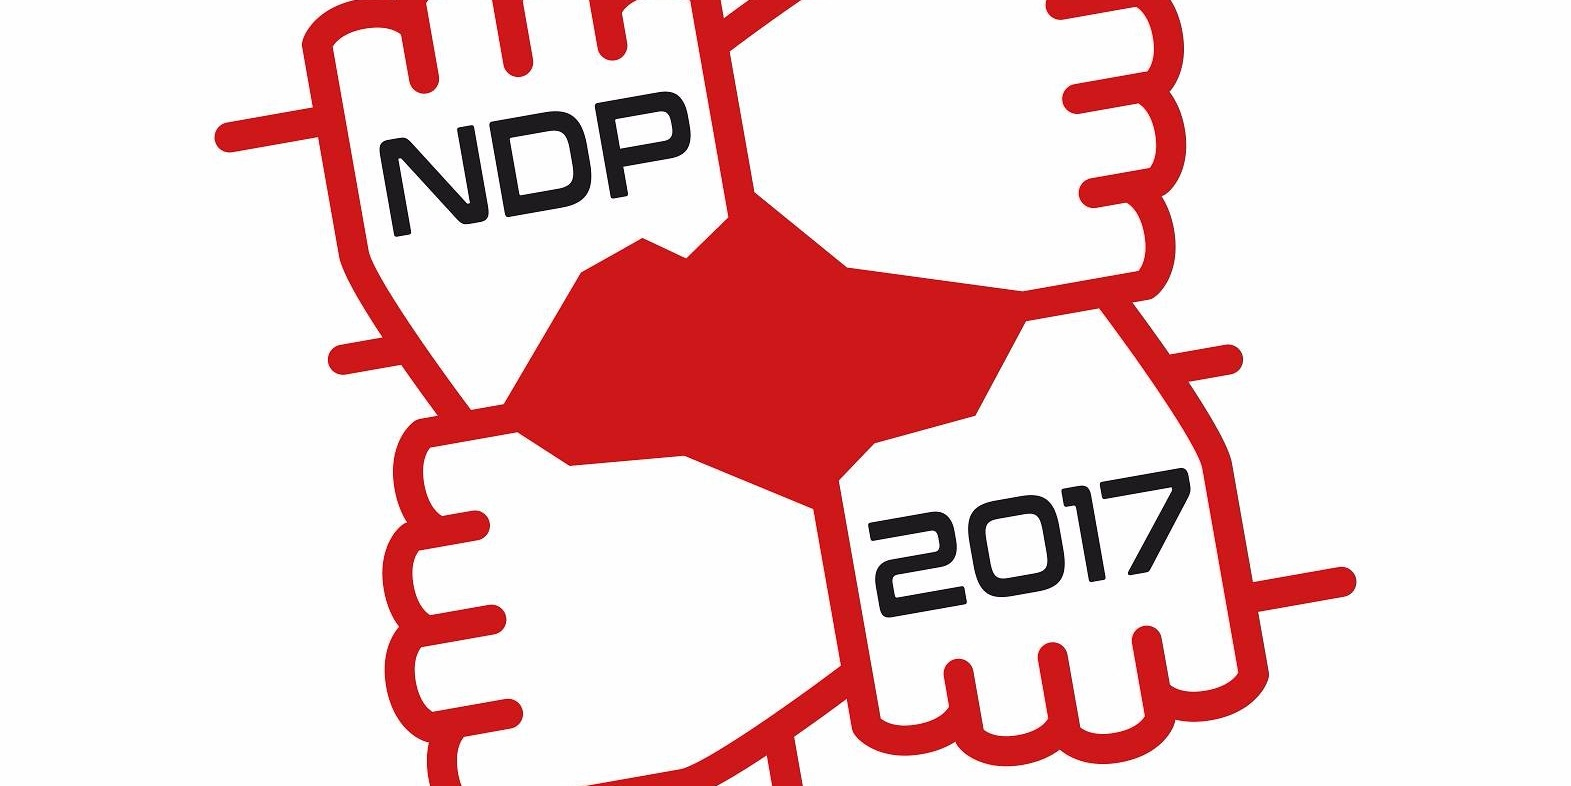 It's that time of the year again, the NDP song for 2017 has arrived — listen